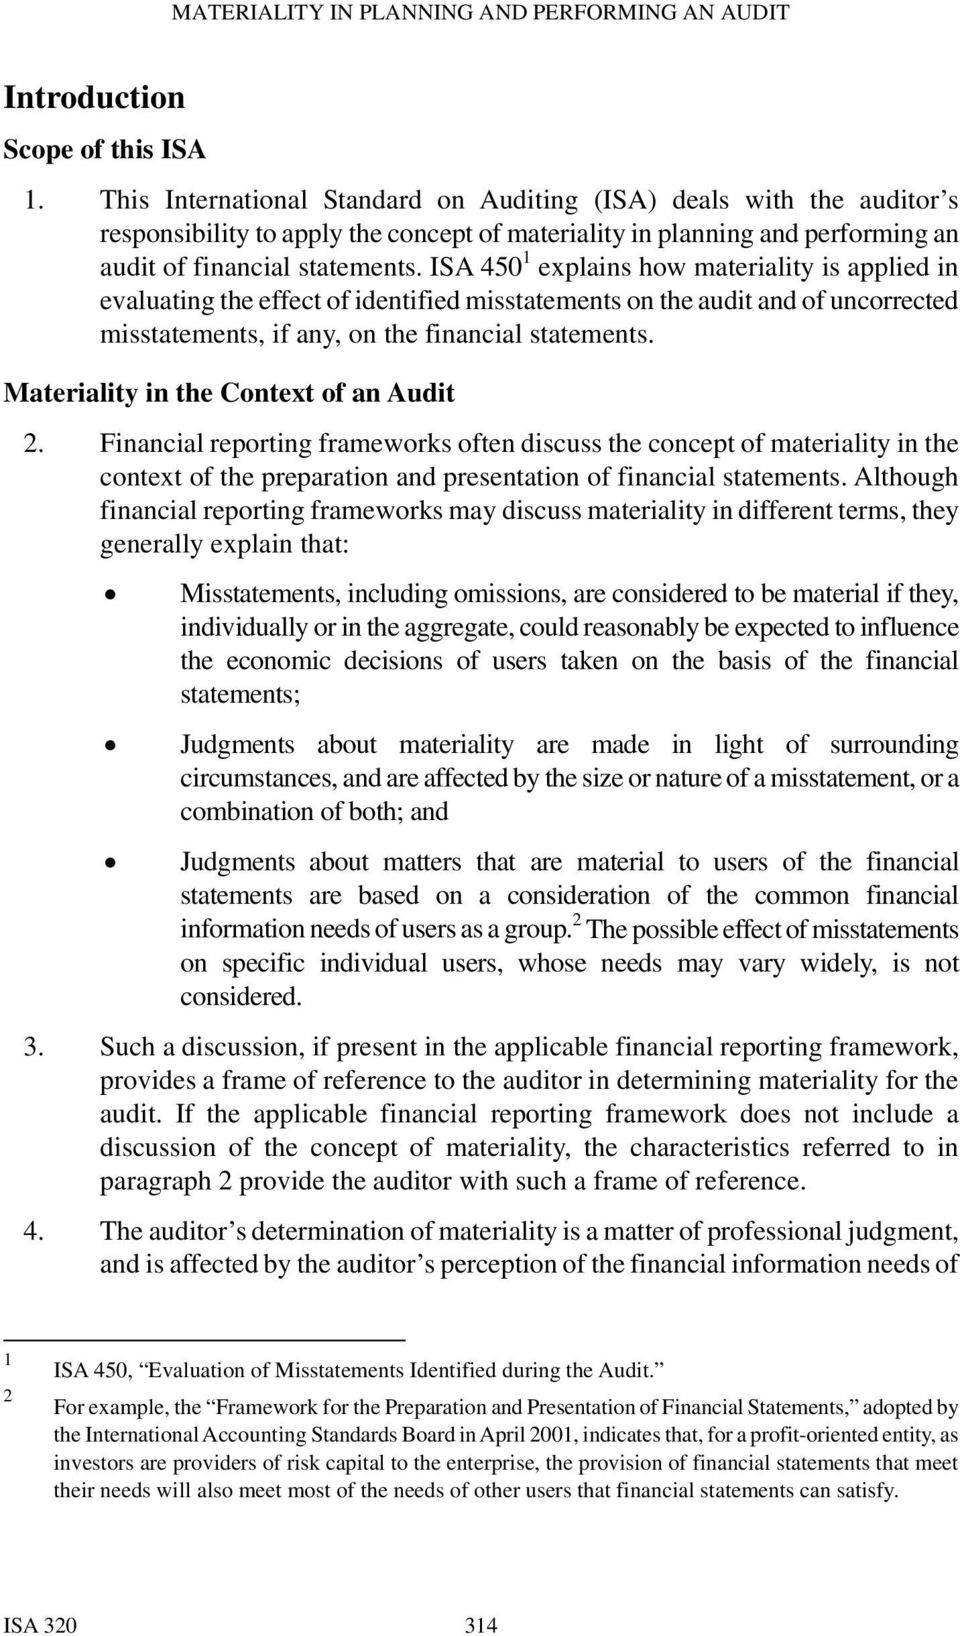 ISA 450 1 explains how materiality is applied in evaluating the effect of identified misstatements on the audit and of uncorrected misstatements, if any, on the financial statements.